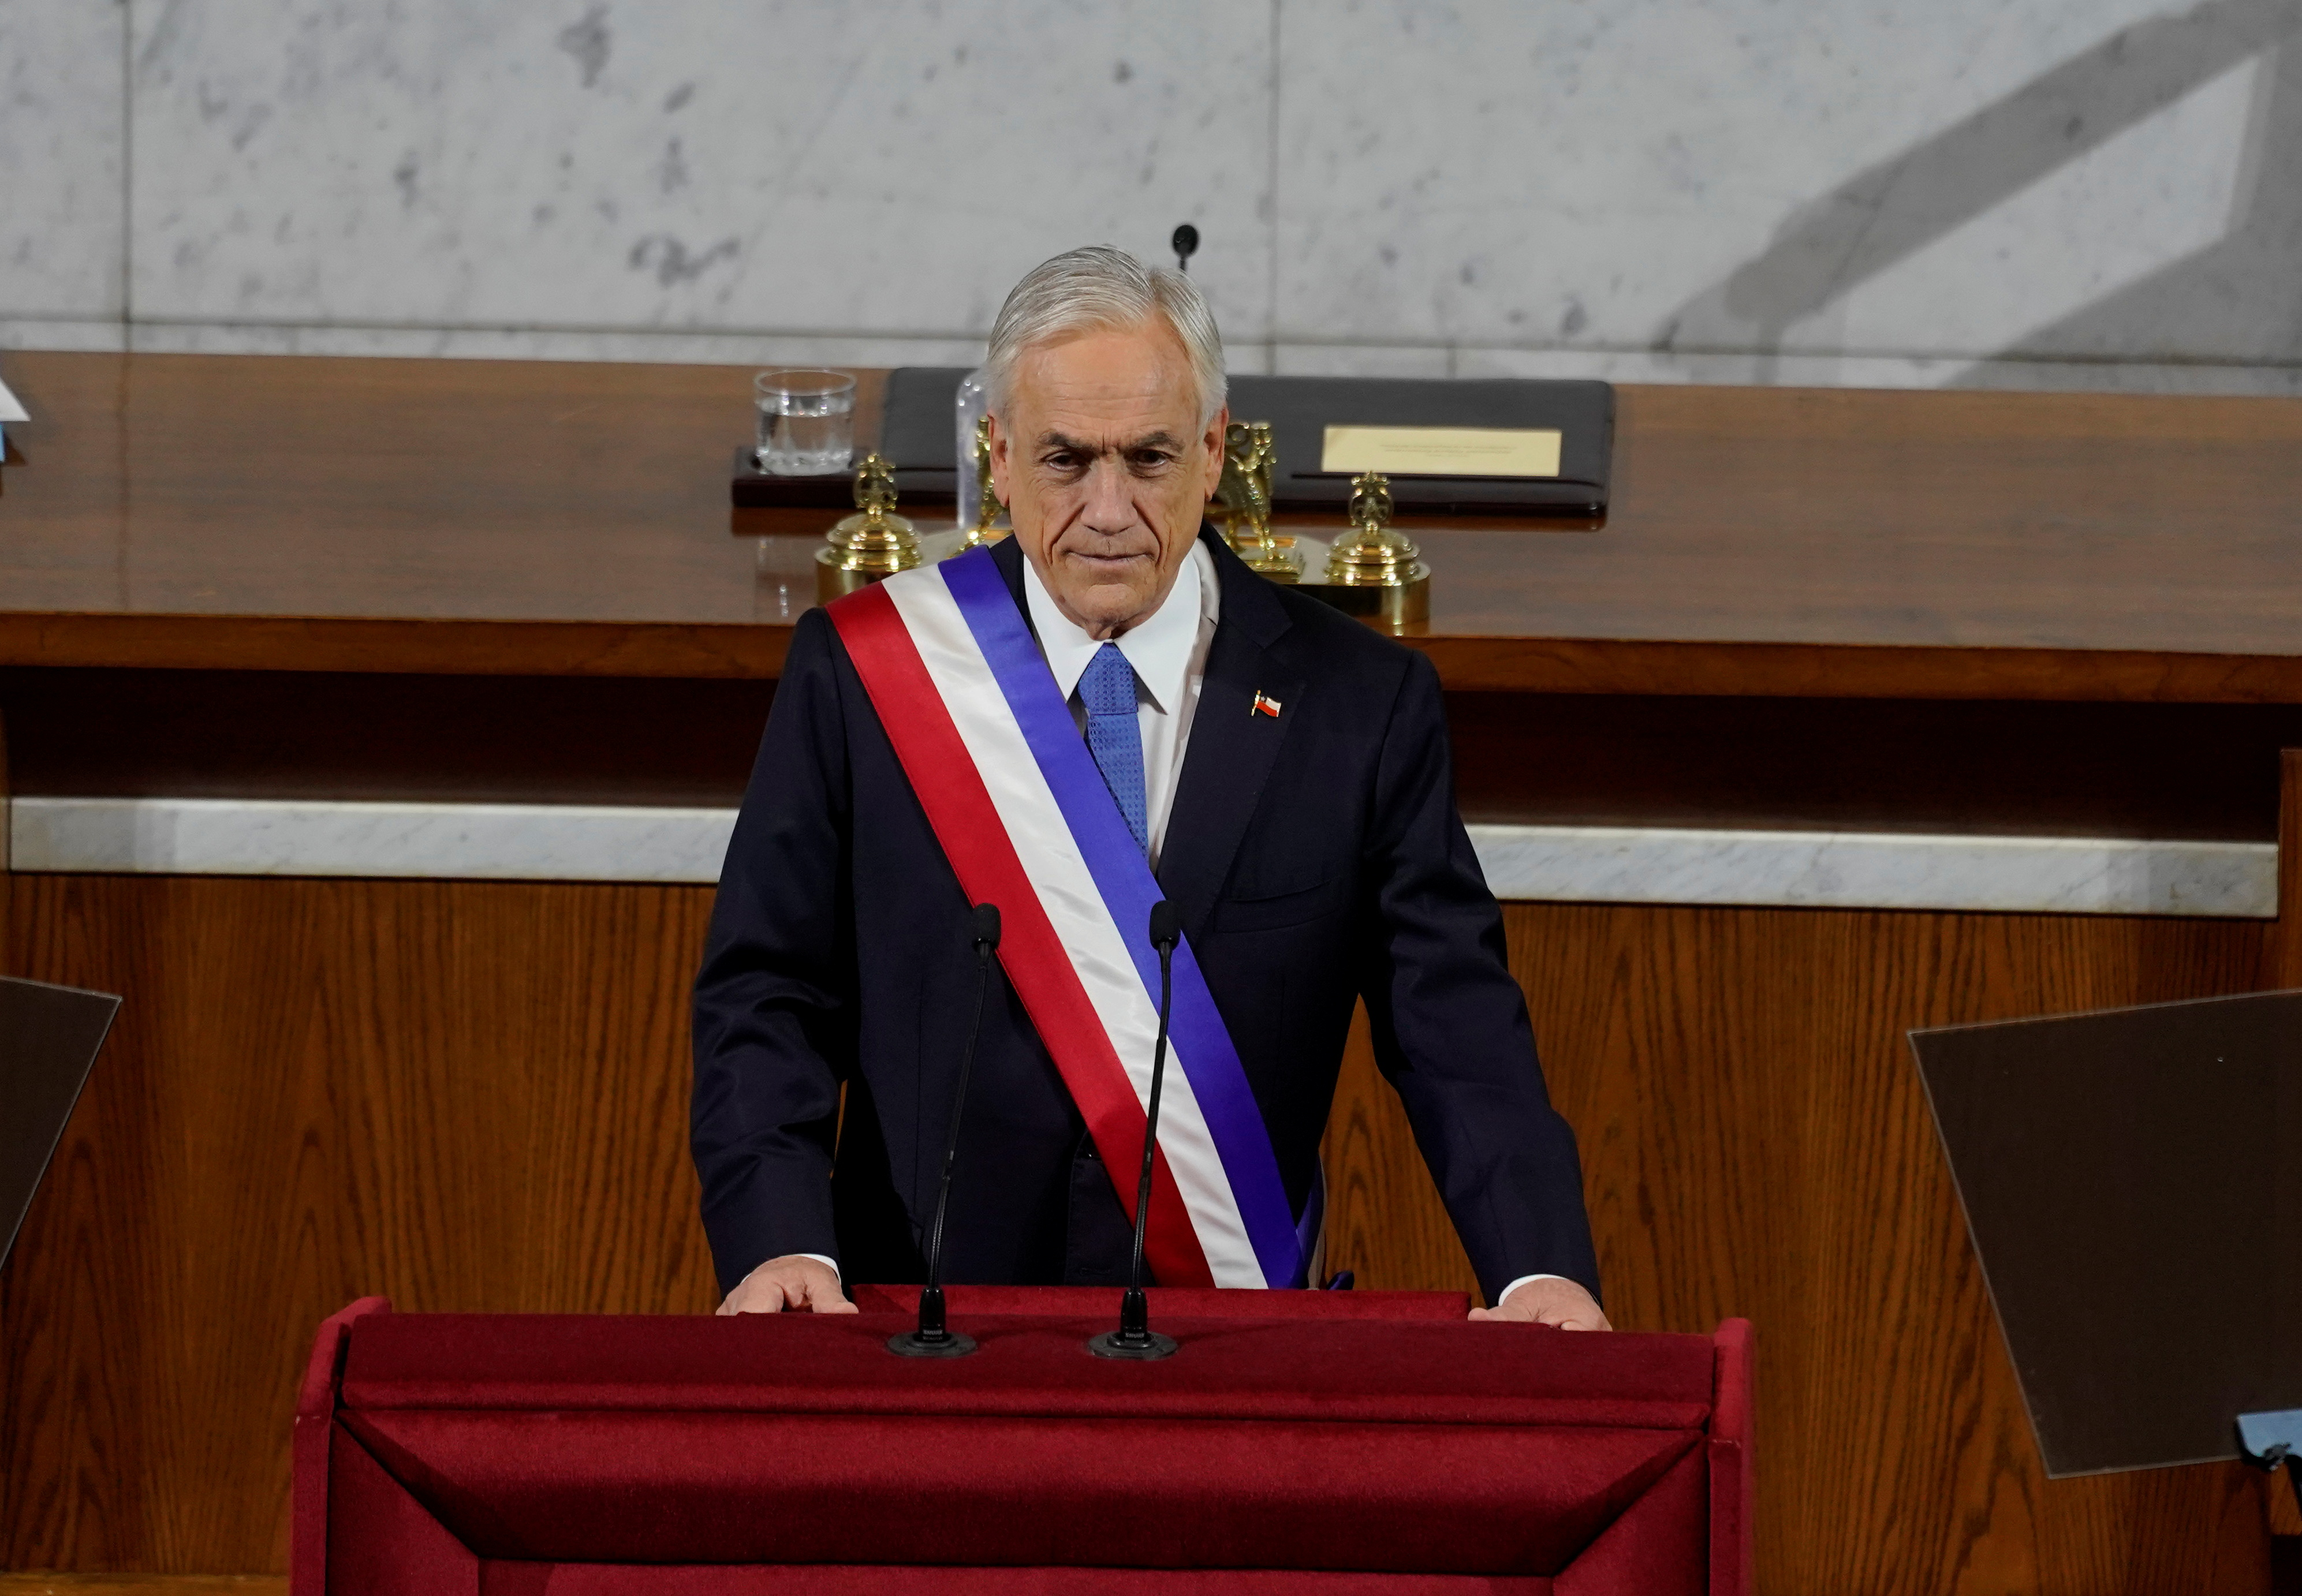 Chile's President Sebastian Pinera attends his annual State of the Nation address in Santiago, Chile June 1, 2021. Chile Presidency/Handout via REUTERS